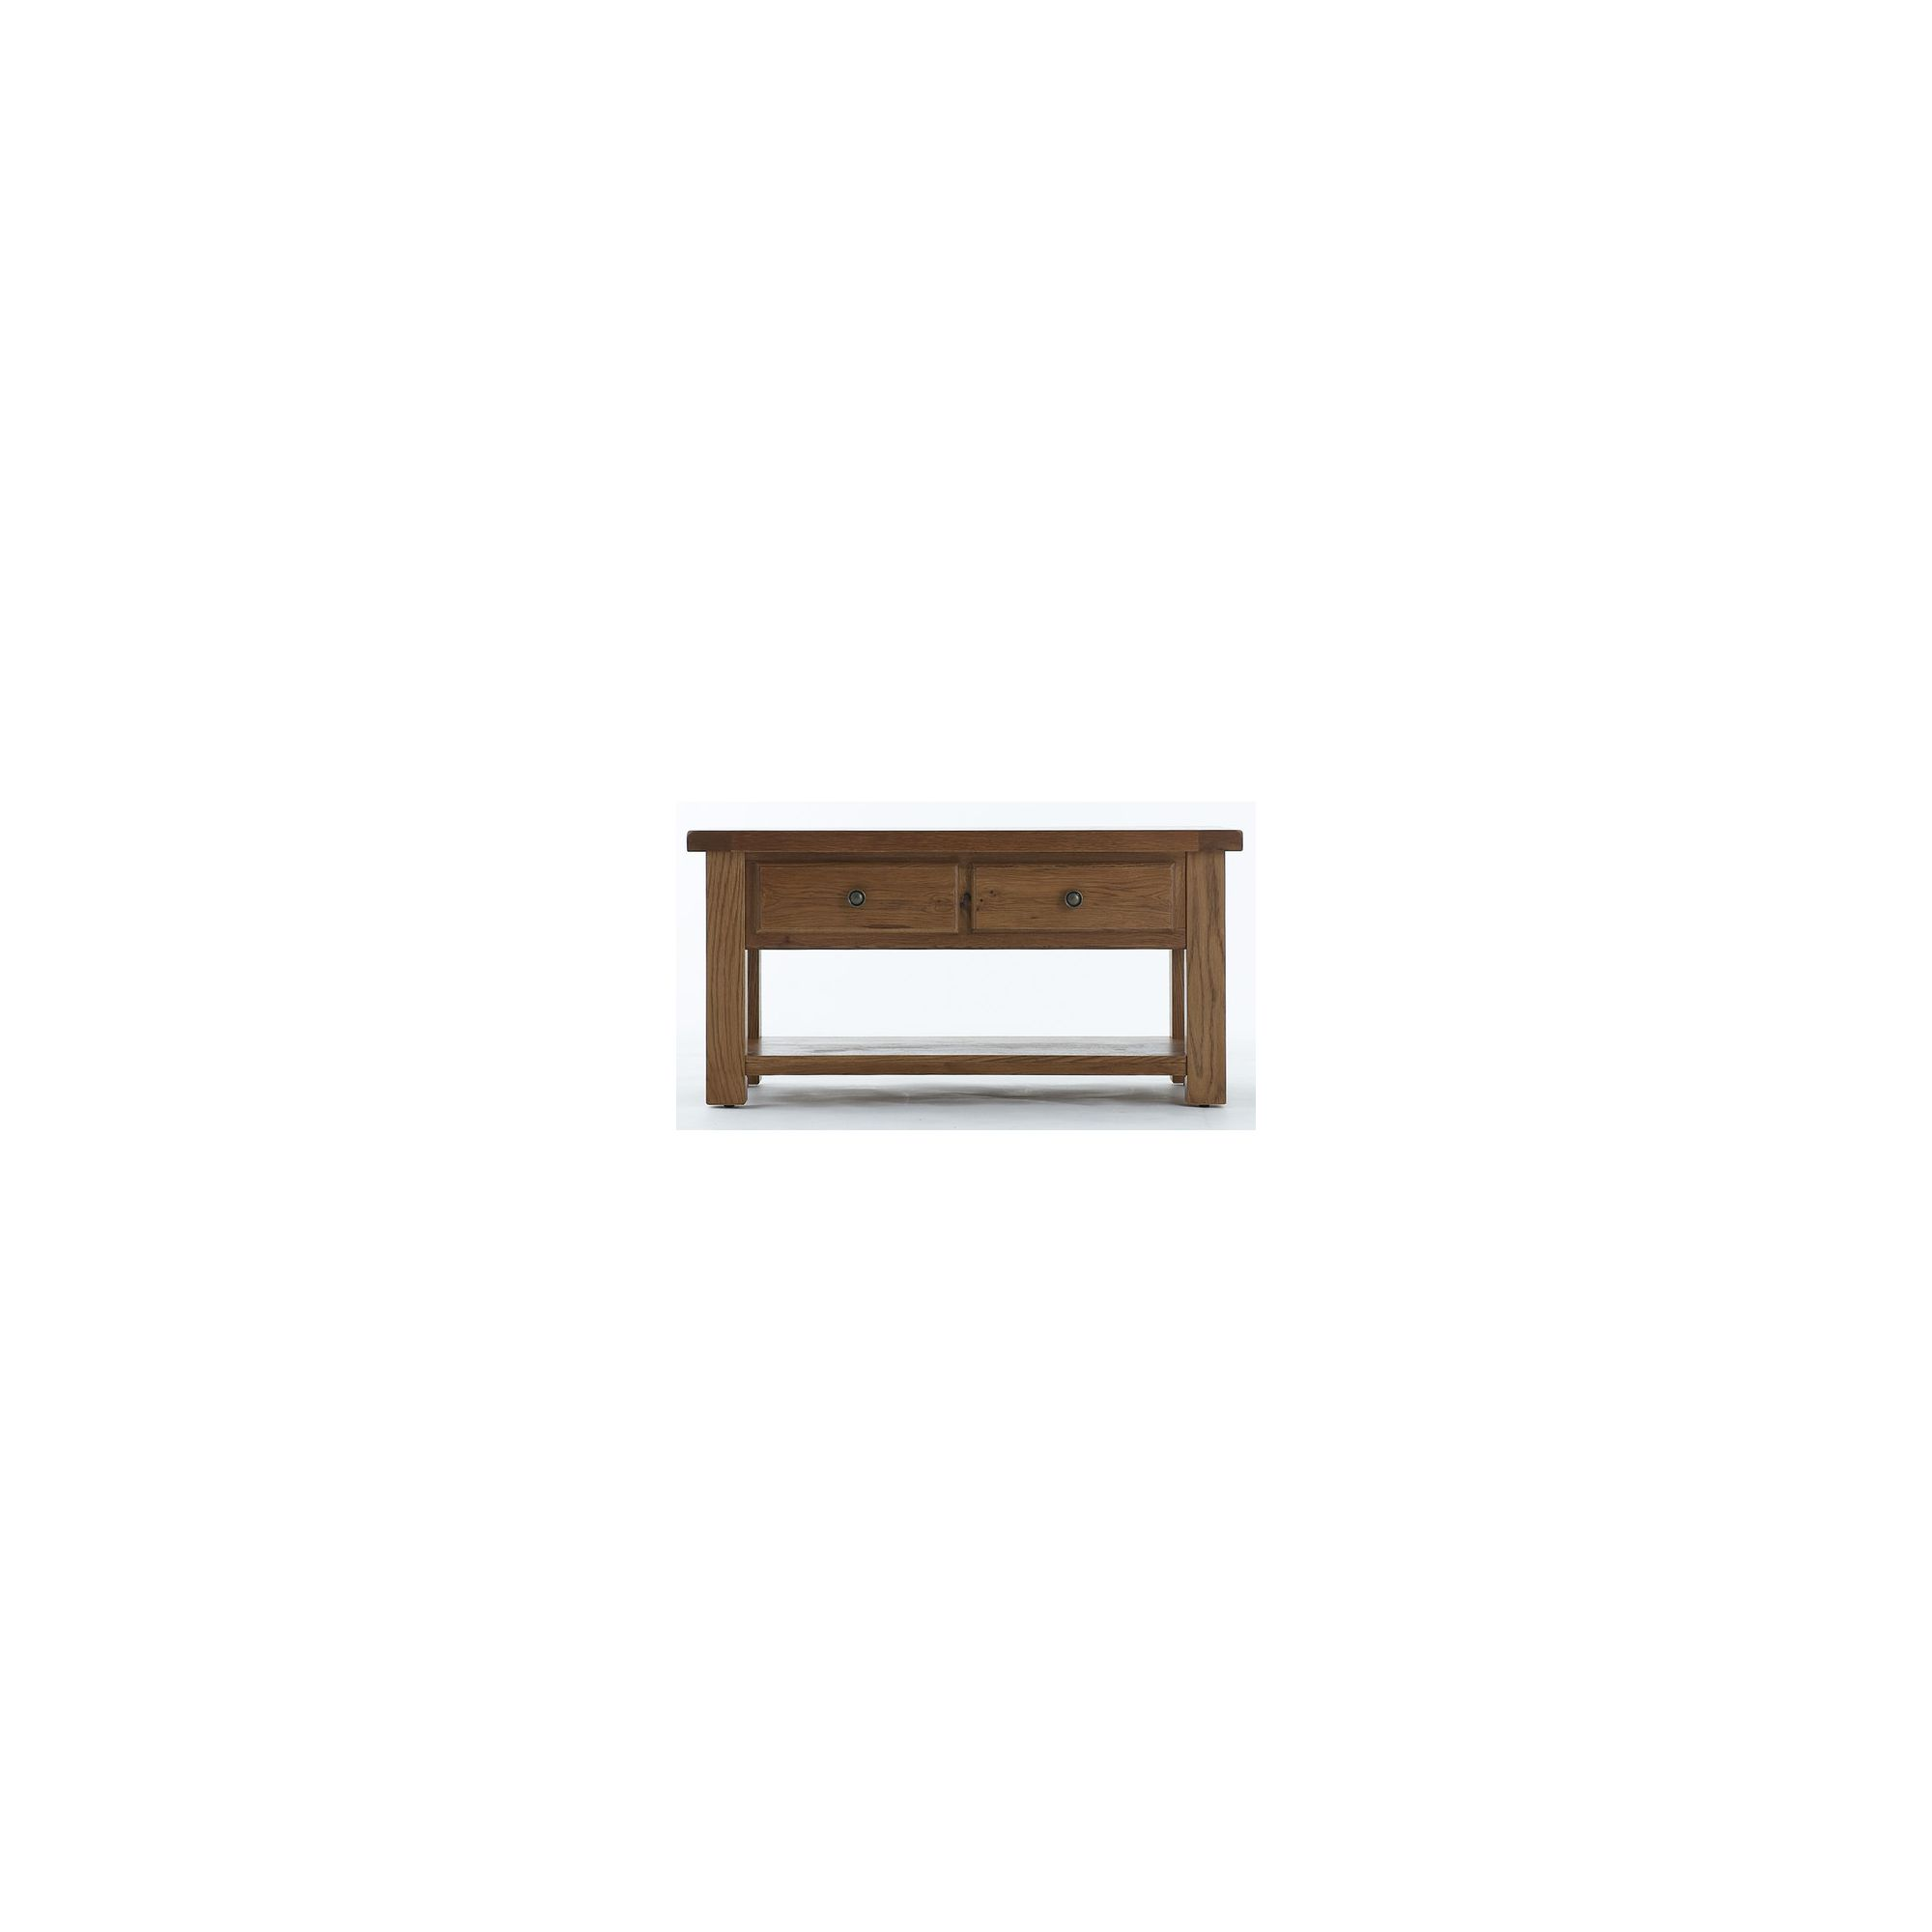 Thorndon Farmhouse Coffee Table in Old Oak at Tesco Direct